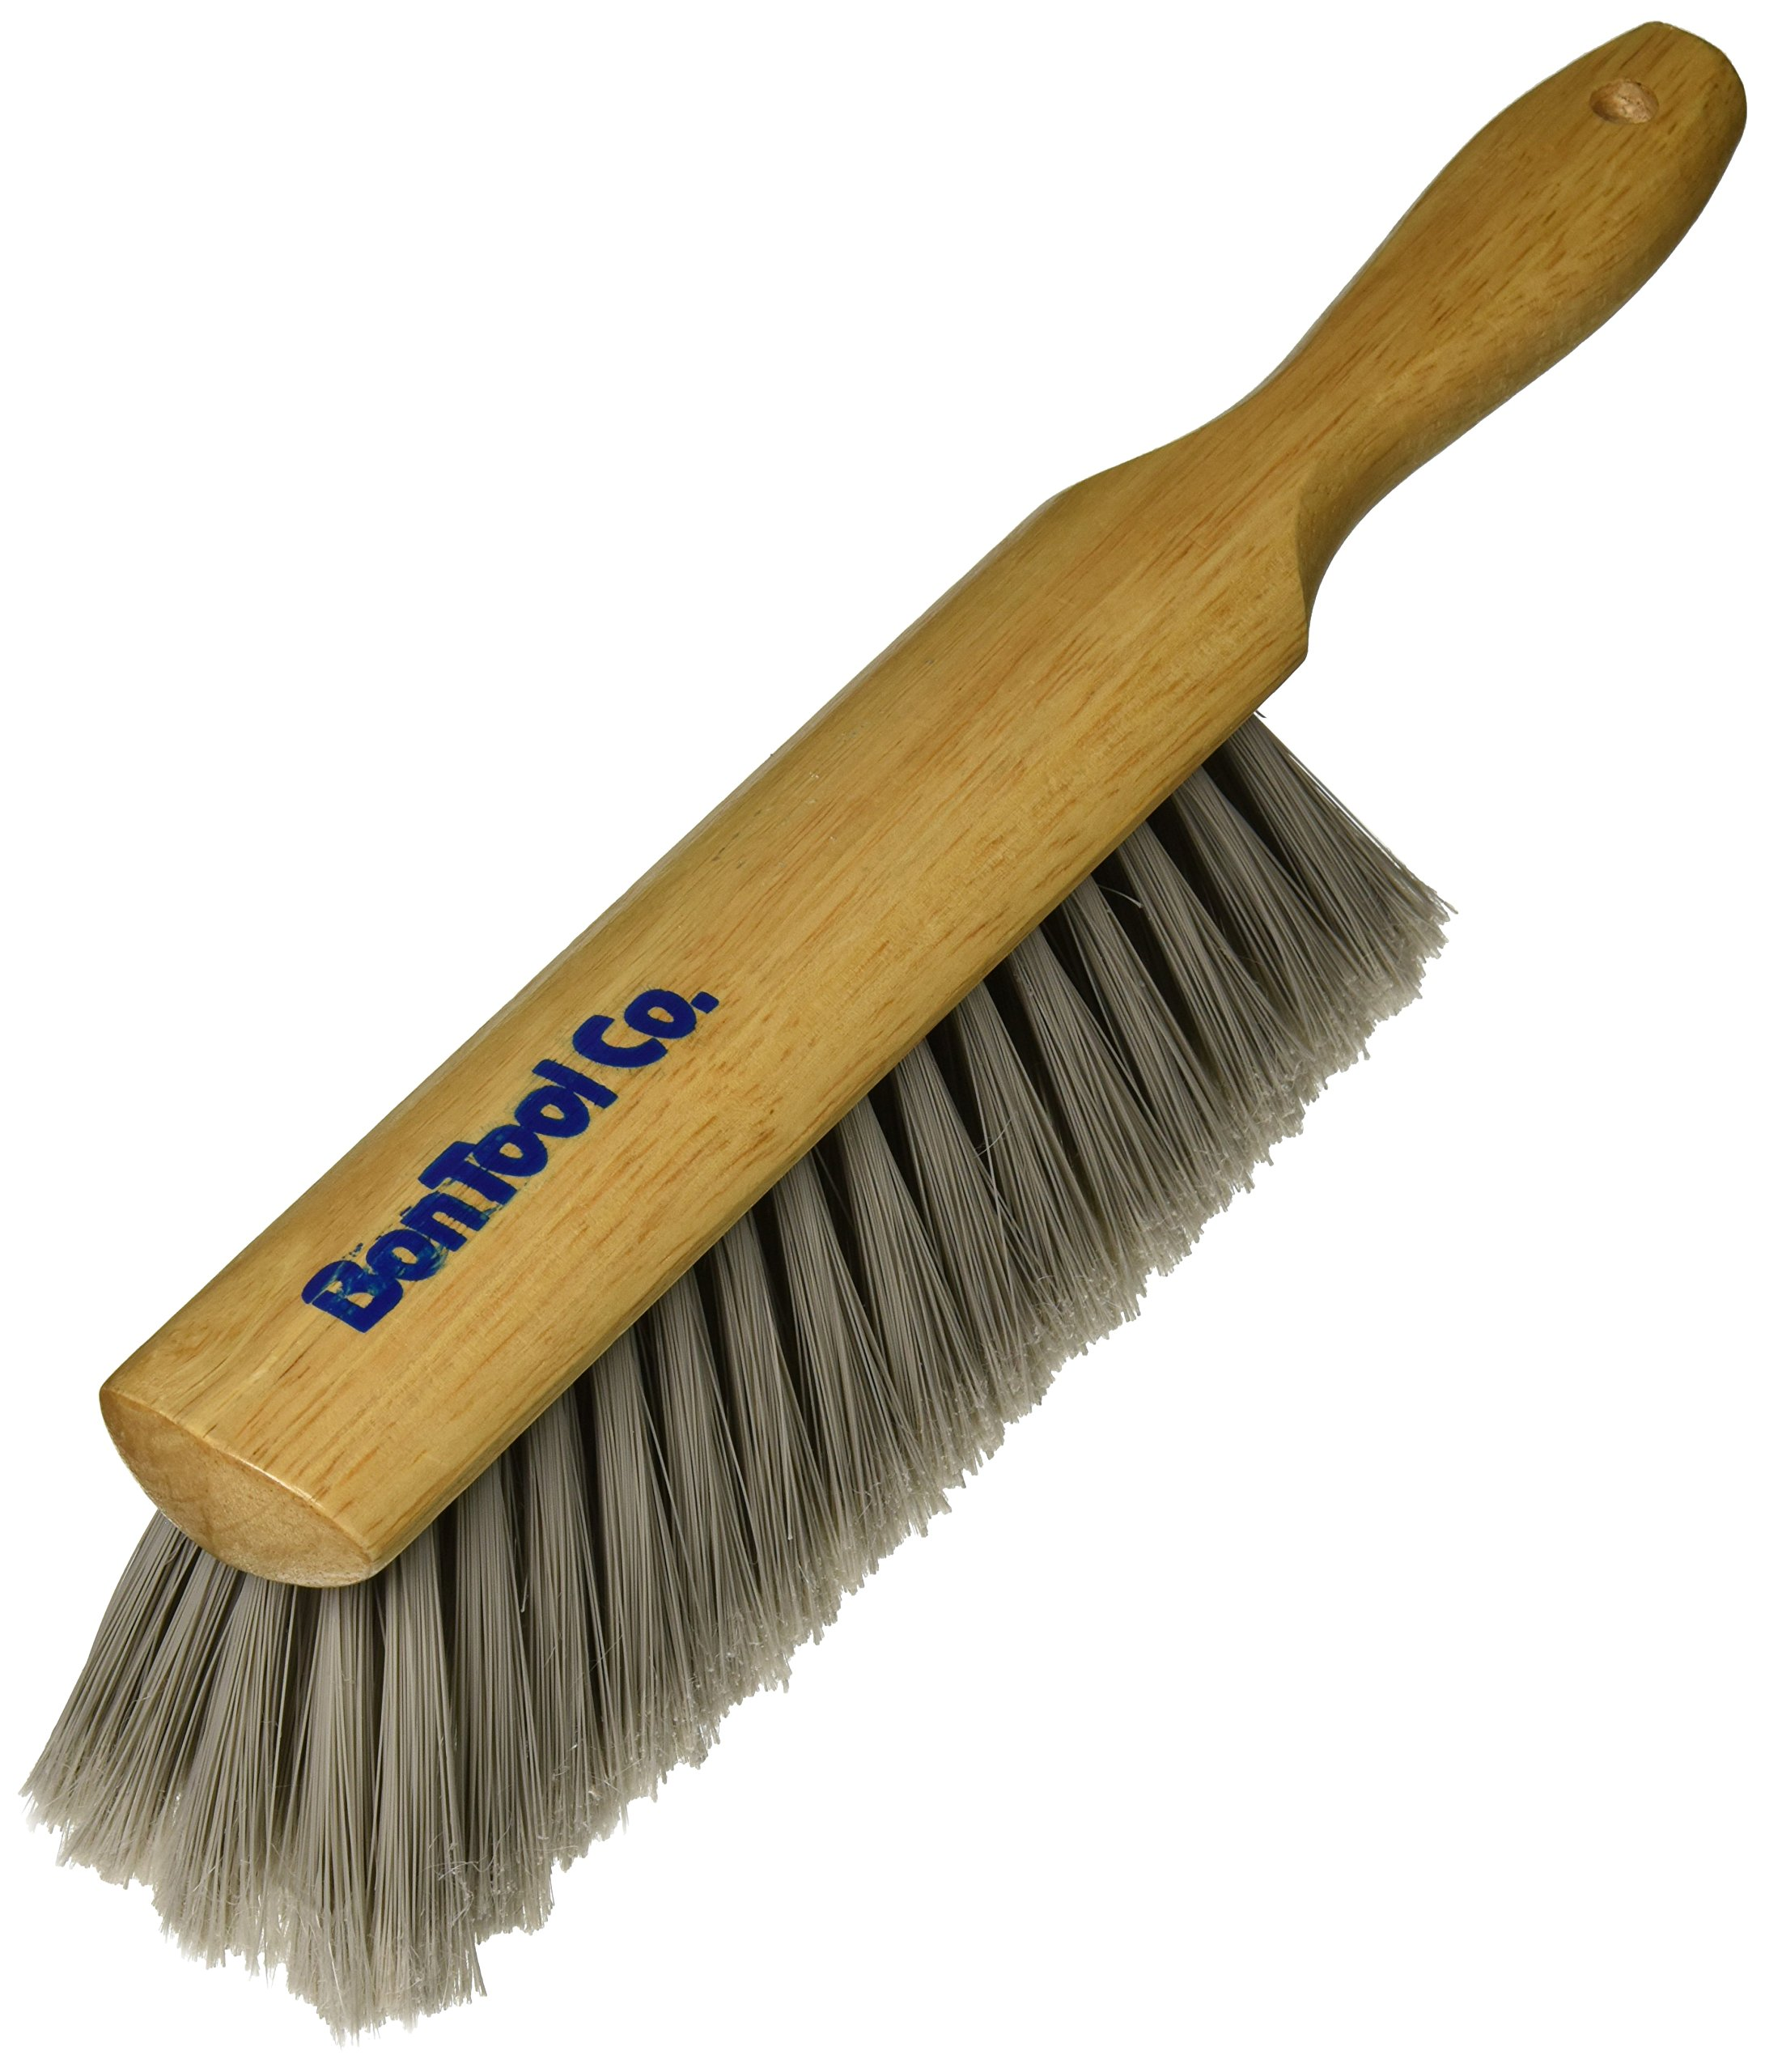 Bon 84-155 13-1/2-Inch Soft Silver Tipped Flagged Counter Brush by bon